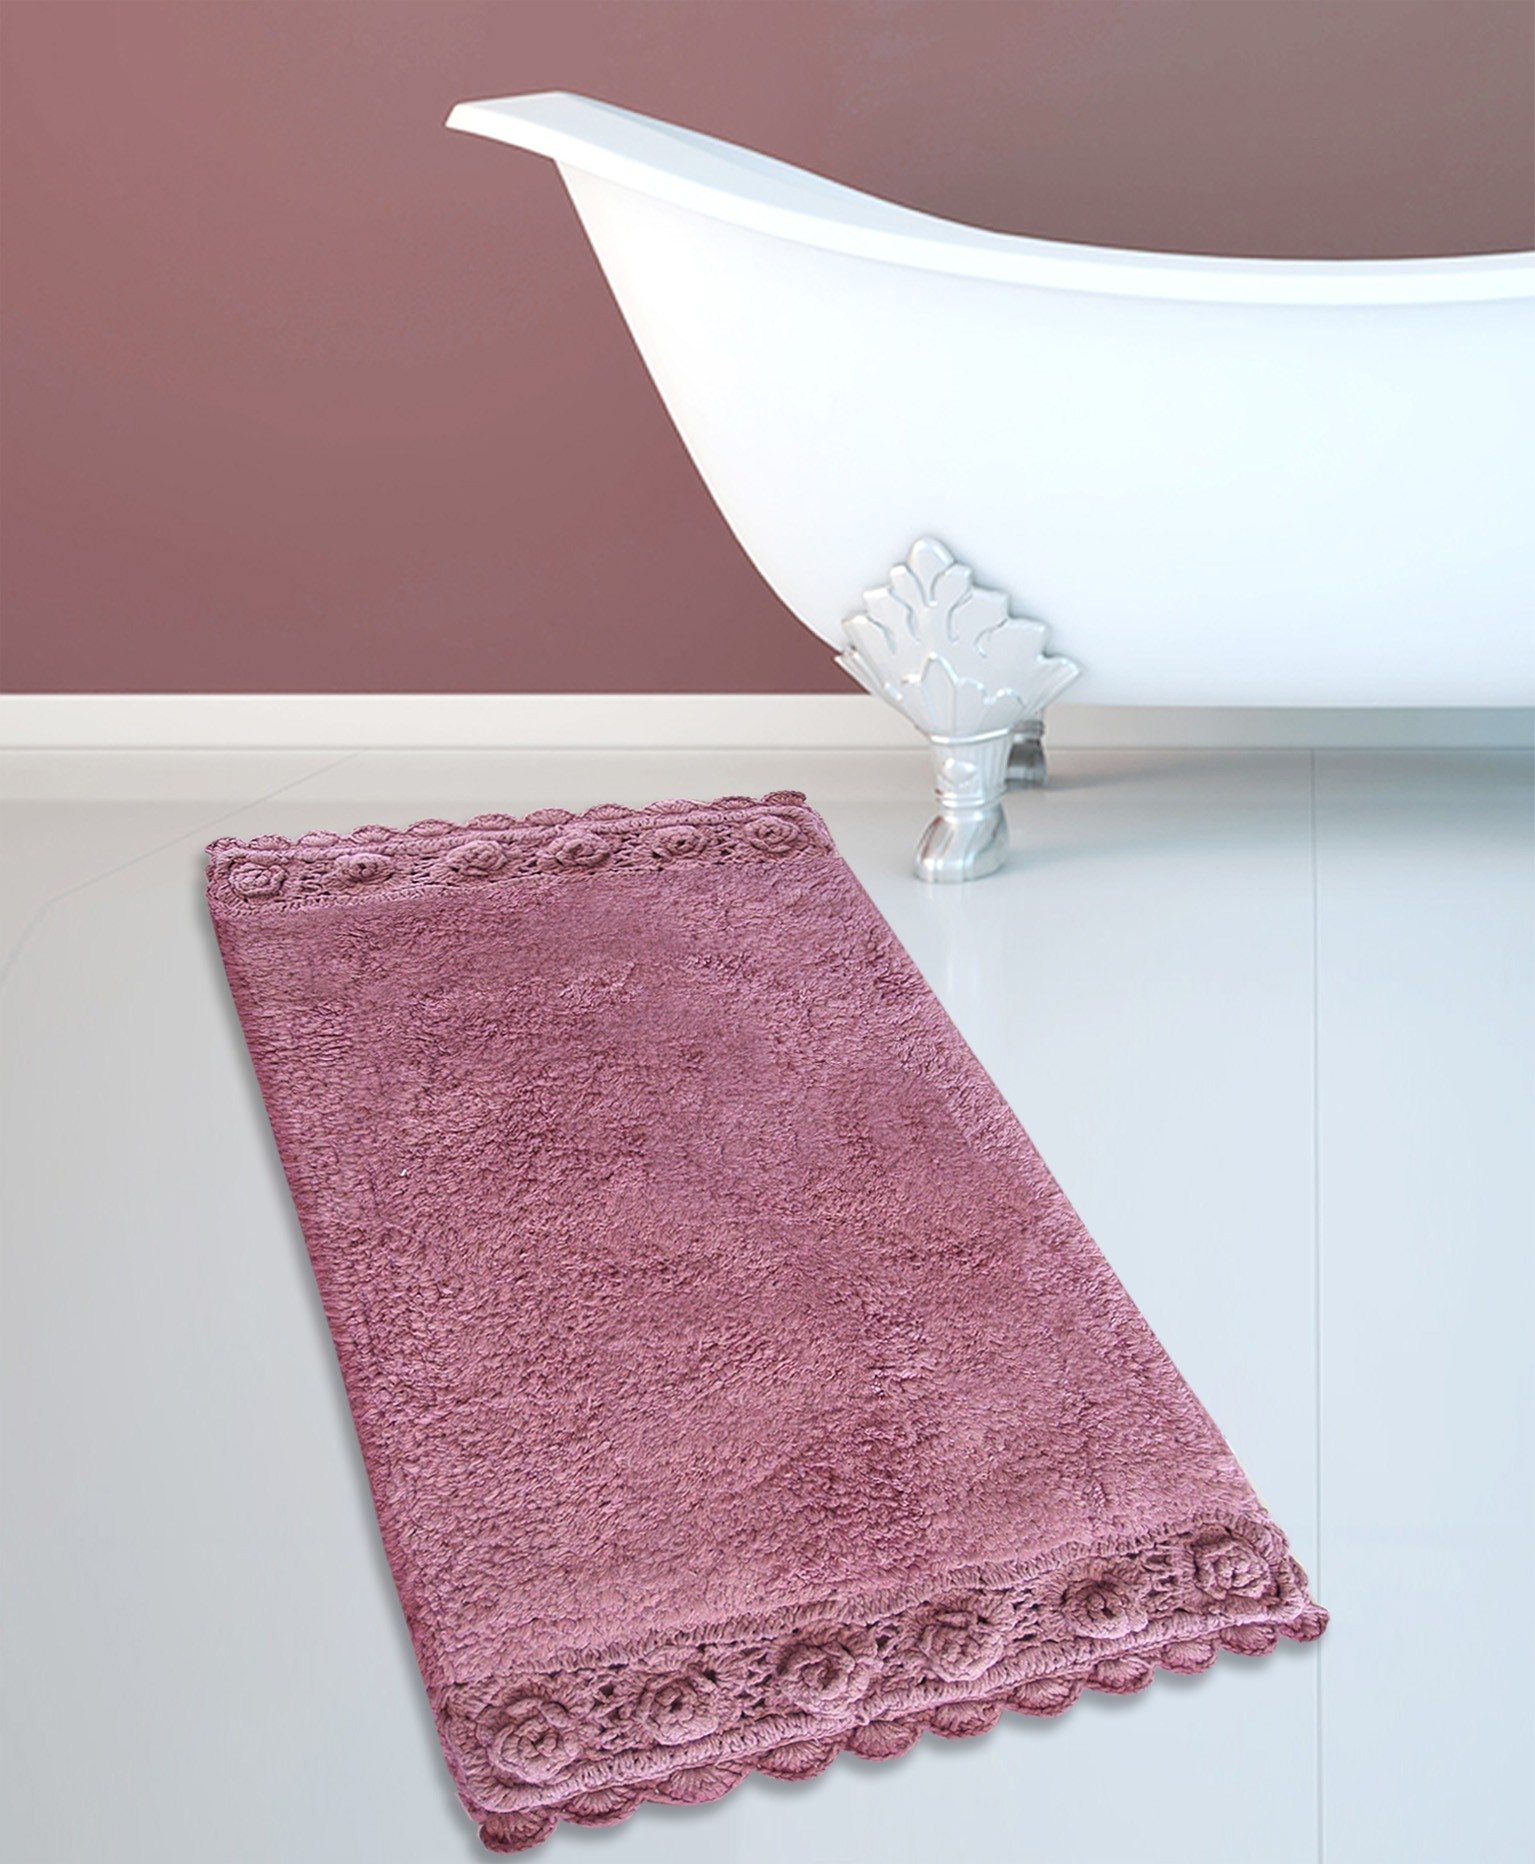 Ταπέτο Μπάνιου San Lorentzo 925 Double Lace Dusty Rose 50×80